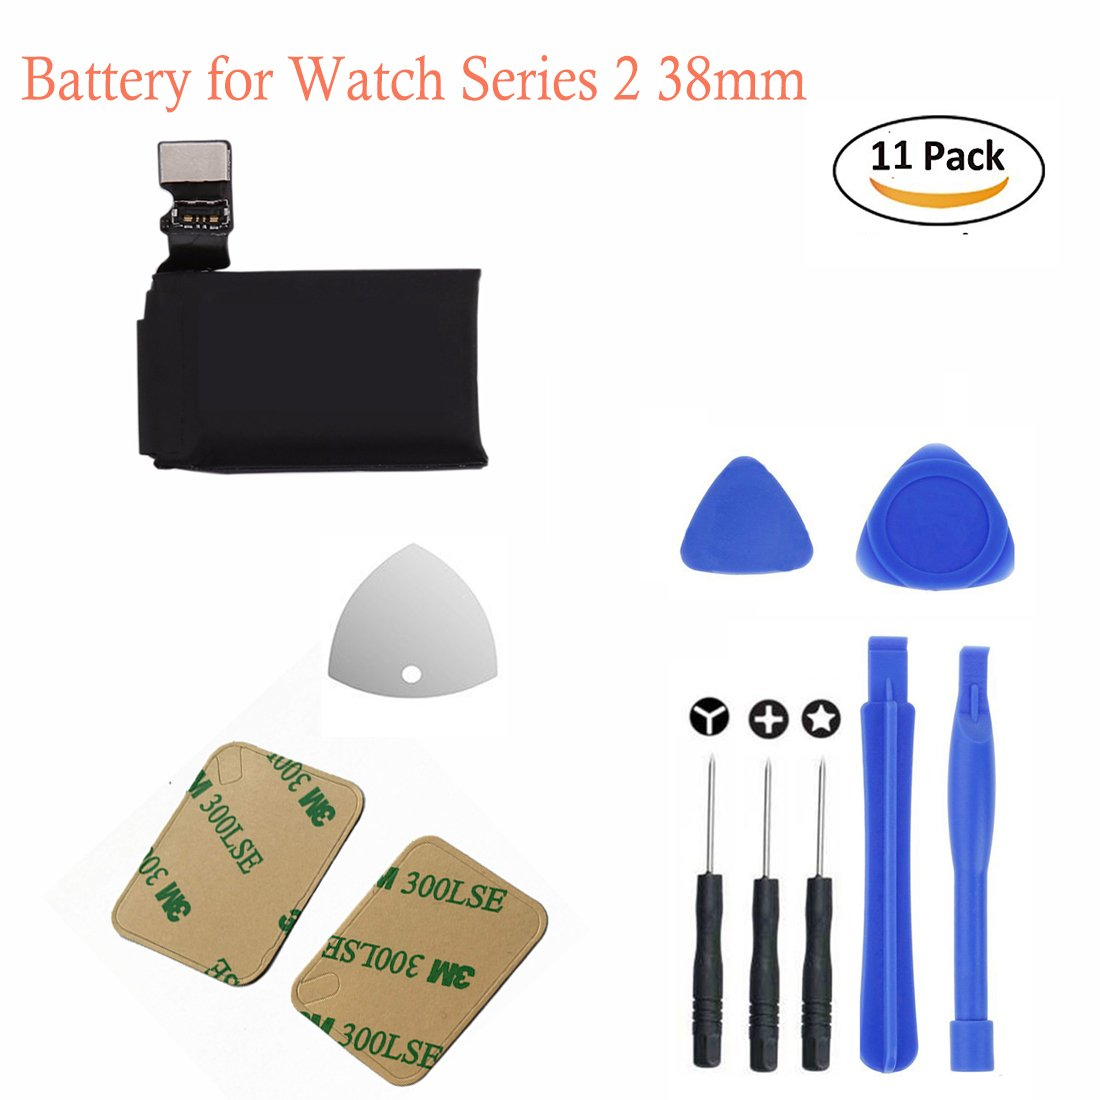 Hdcku Replacement Battery Kit For Apple Watch Series 2 Baterai Iwatch 38mm A1757 And A1816365 Days Warranty Cell Phones Accessories